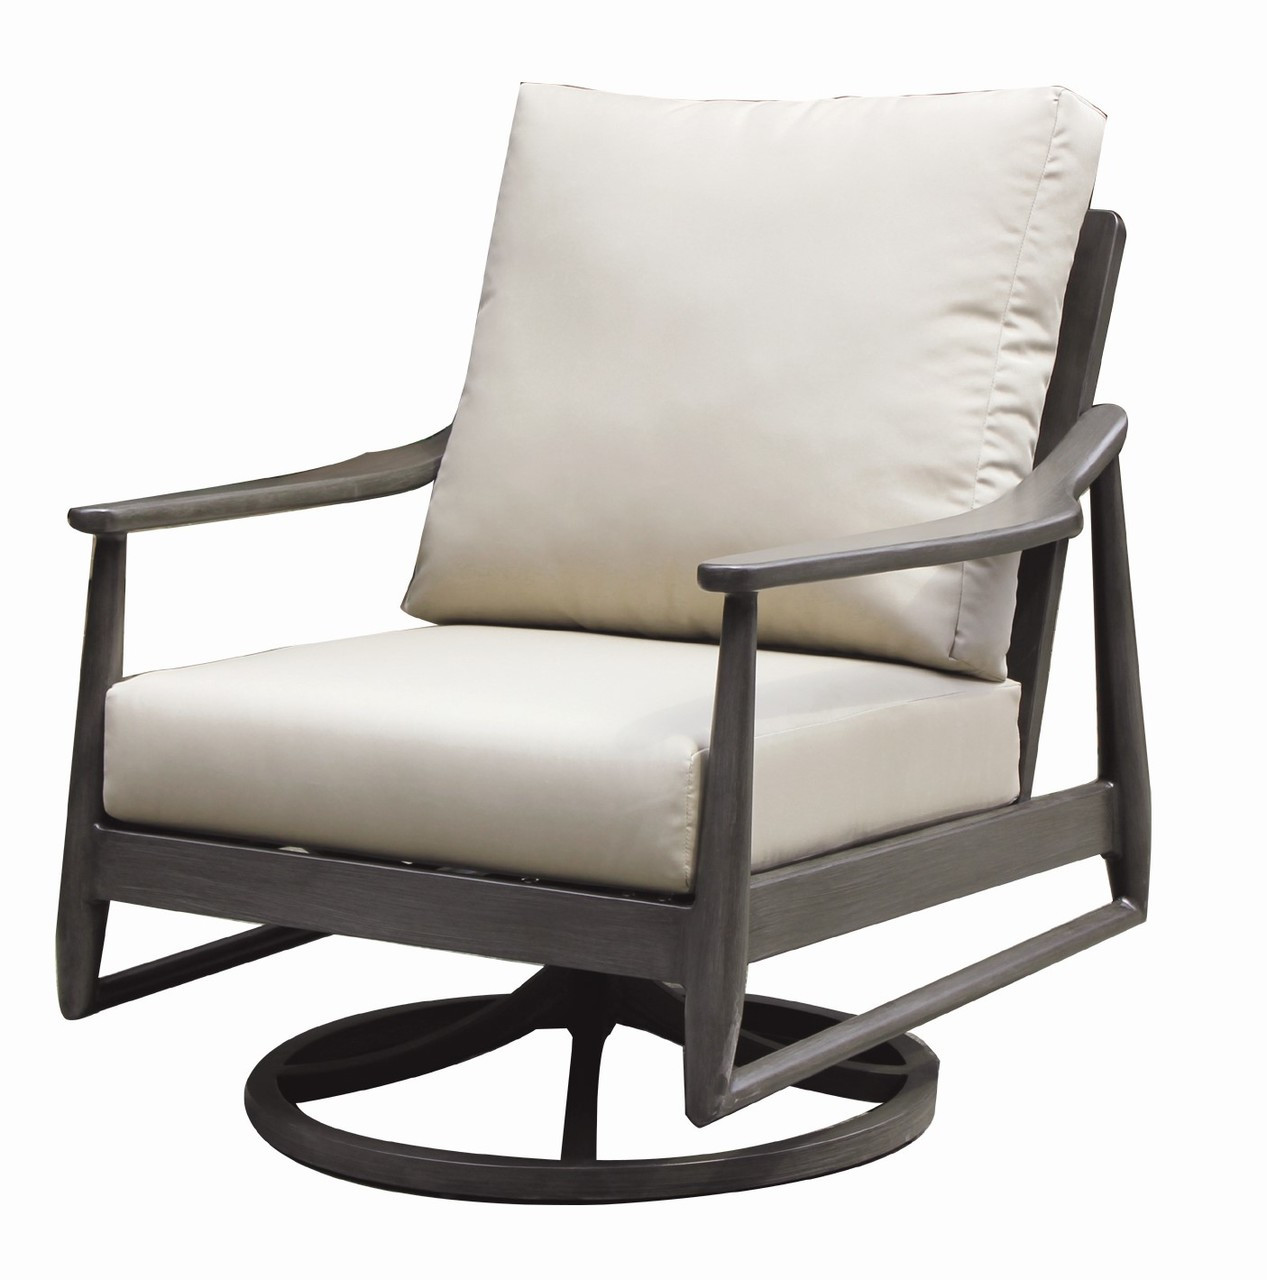 Swivel Rocking Chairs Ratana Bolano Swivel Rocking Lounge Chair